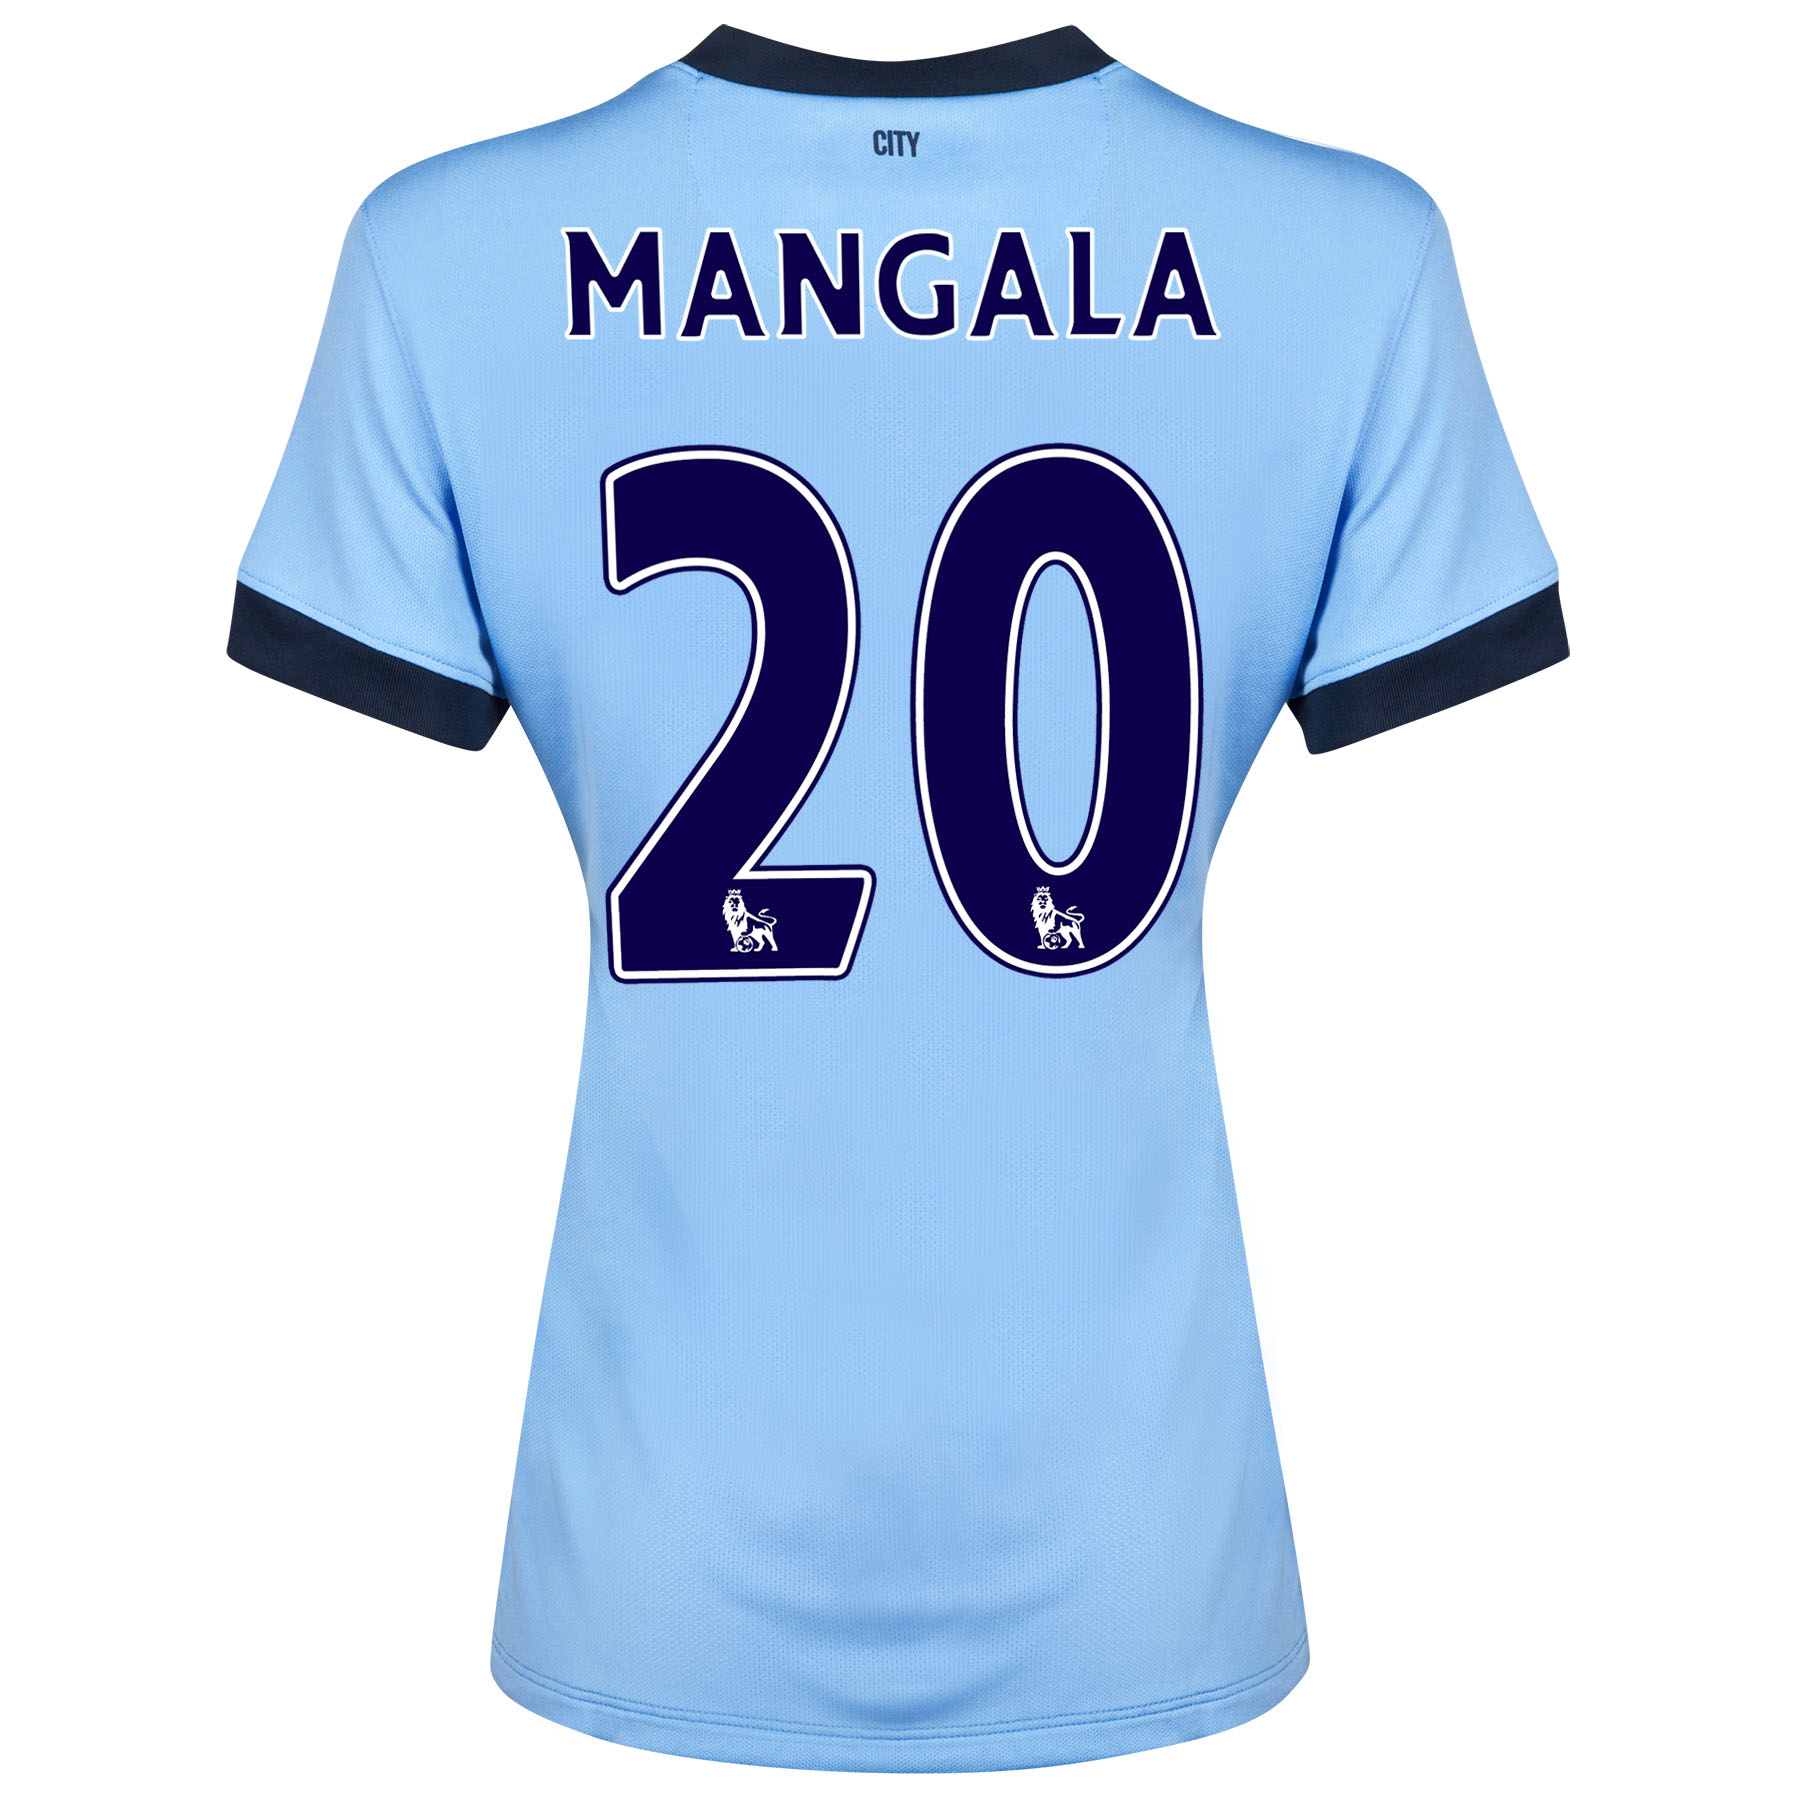 Manchester City Home Shirt 2014/15 - Womens Sky Blue with Mangala 20 printing